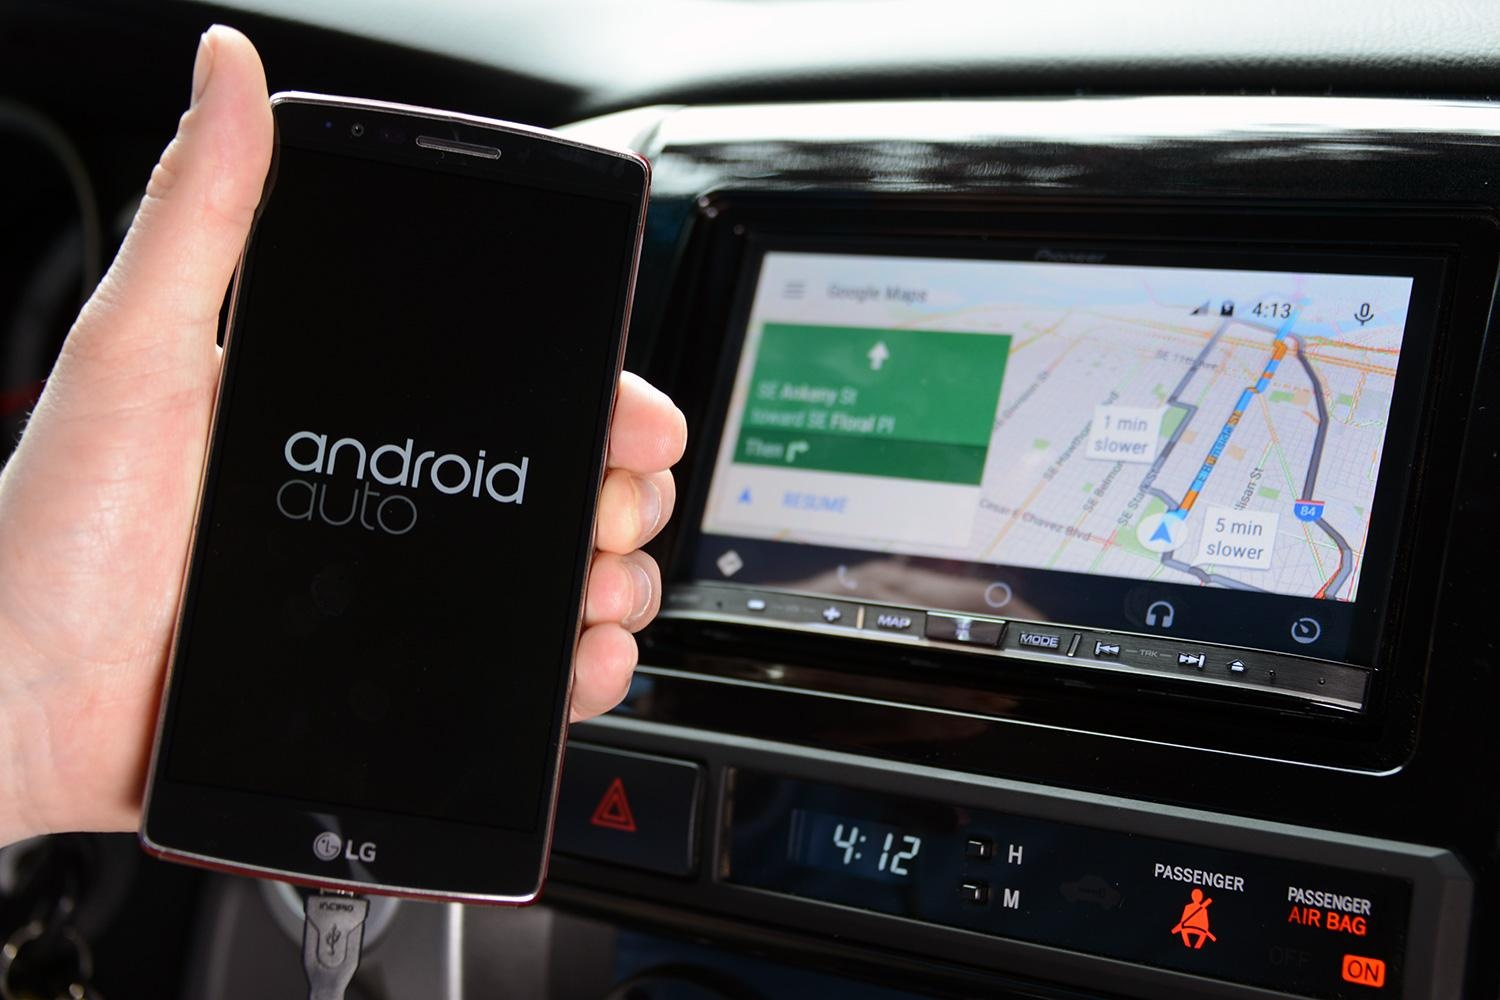 Android Auto 3.4.582533-release